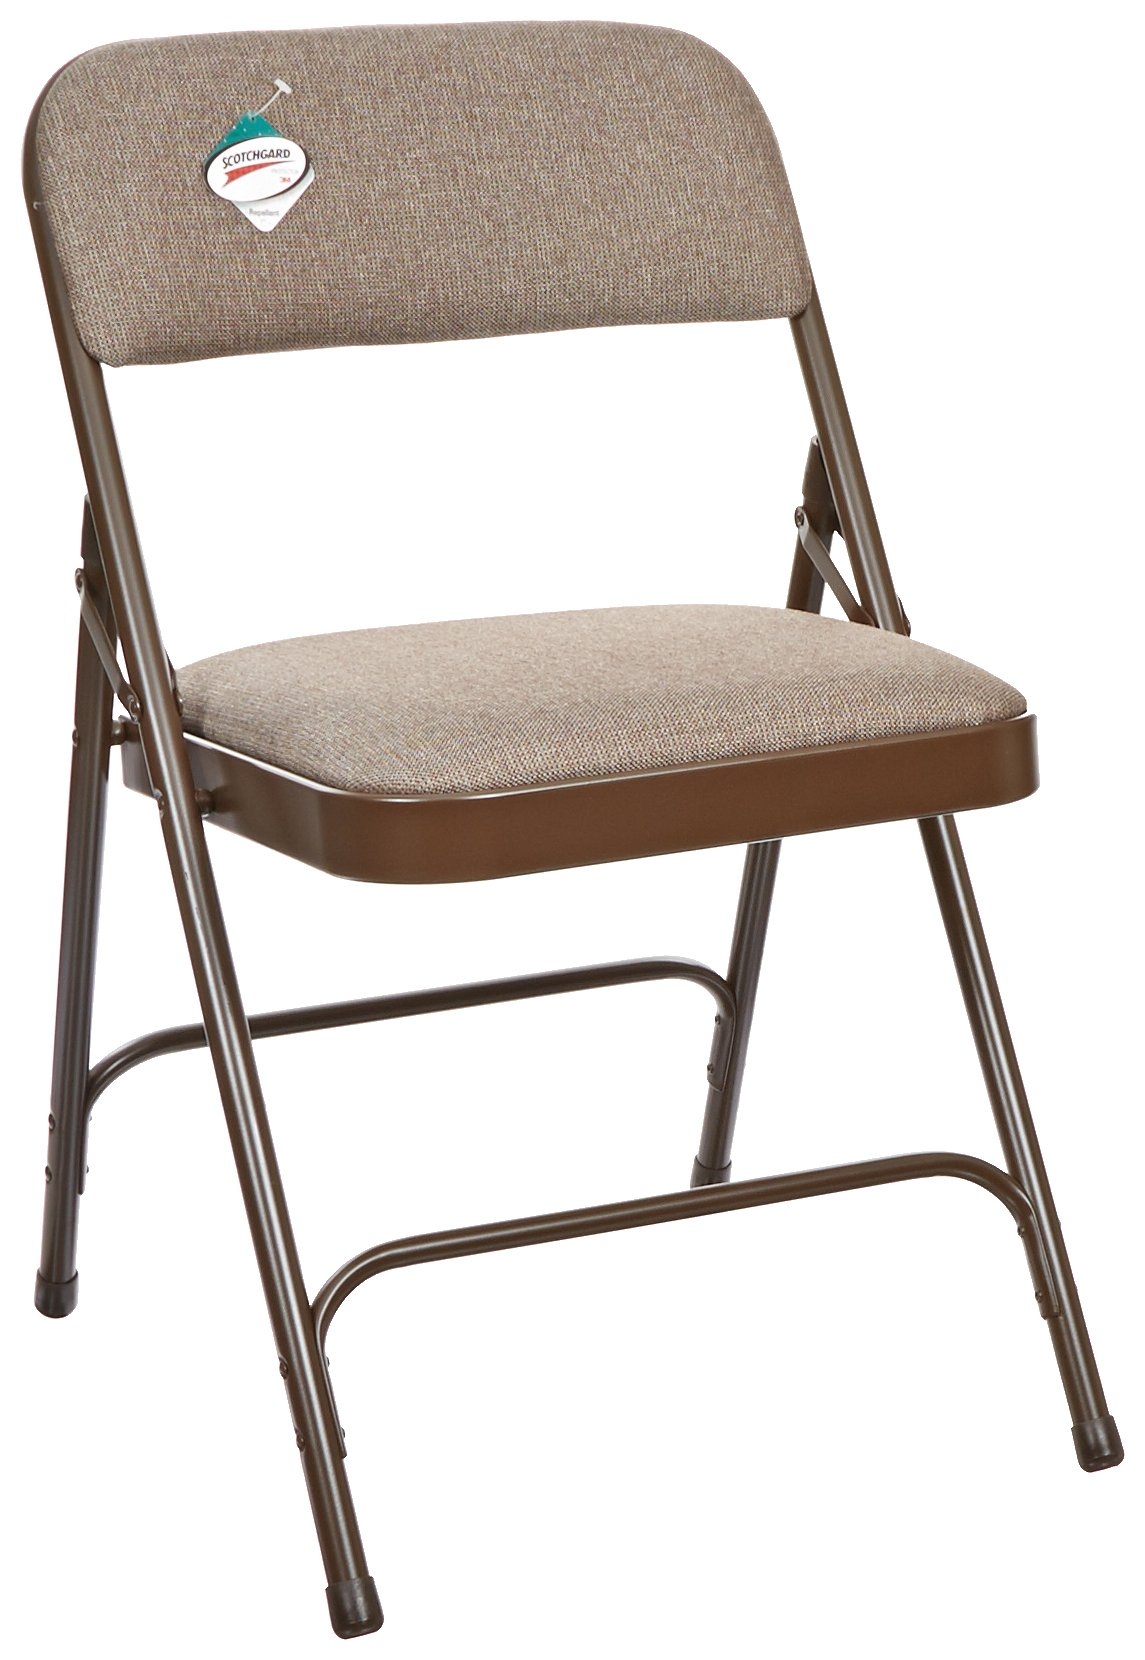 National Public Seating 2200 Series Steel Frame Upholstered Premium Fabric Seat and Back Folding Chair with Double Brace, 480 lbs Capacity, Russet Walnut/Brown (Carton of 4) by NPS